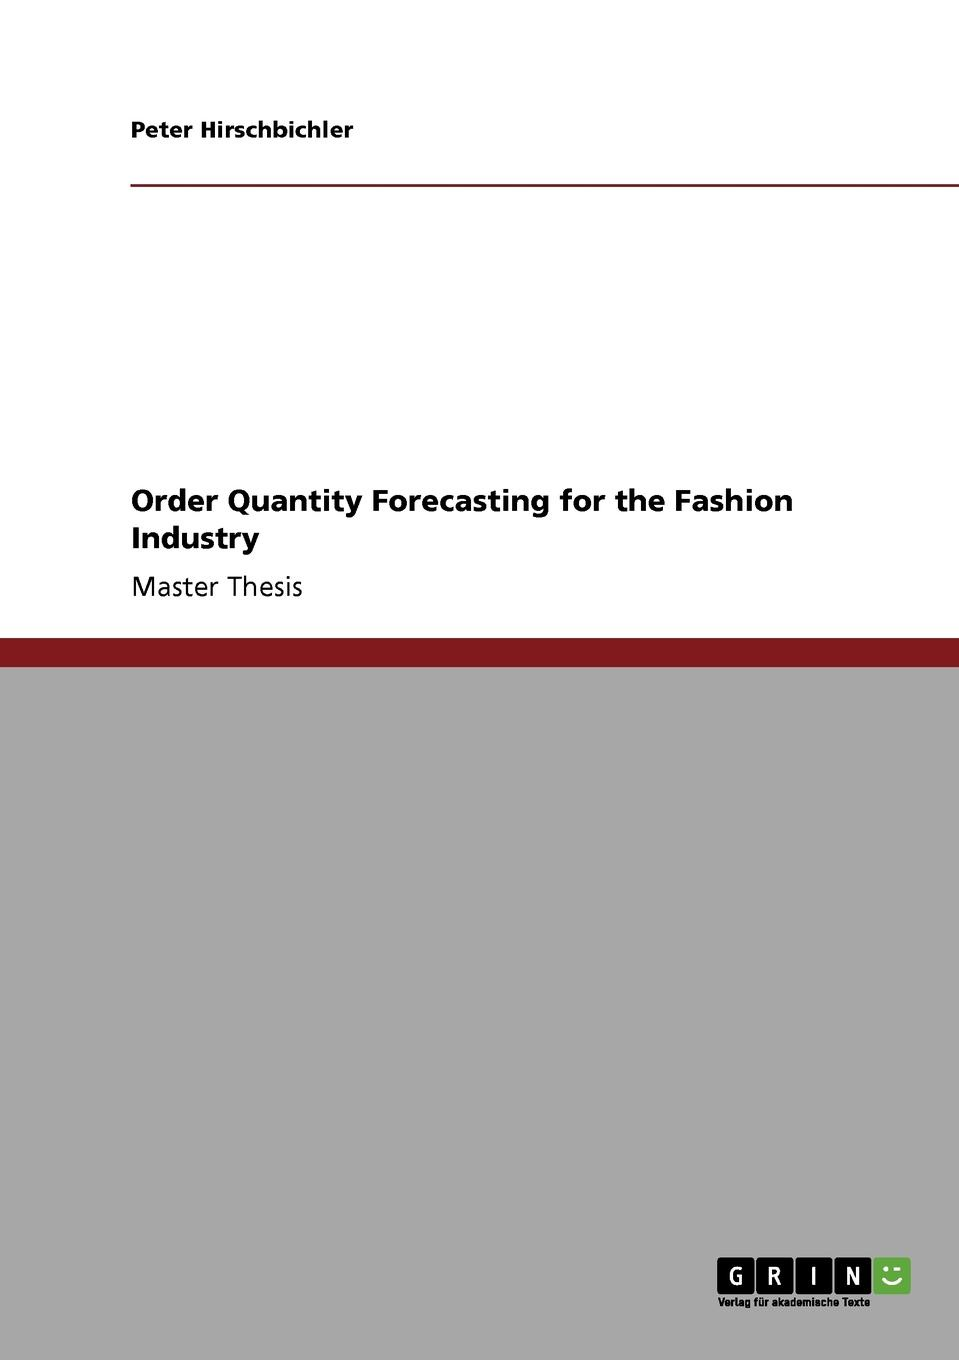 Peter Hirschbichler Order Quantity Forecasting for the Fashion Industry